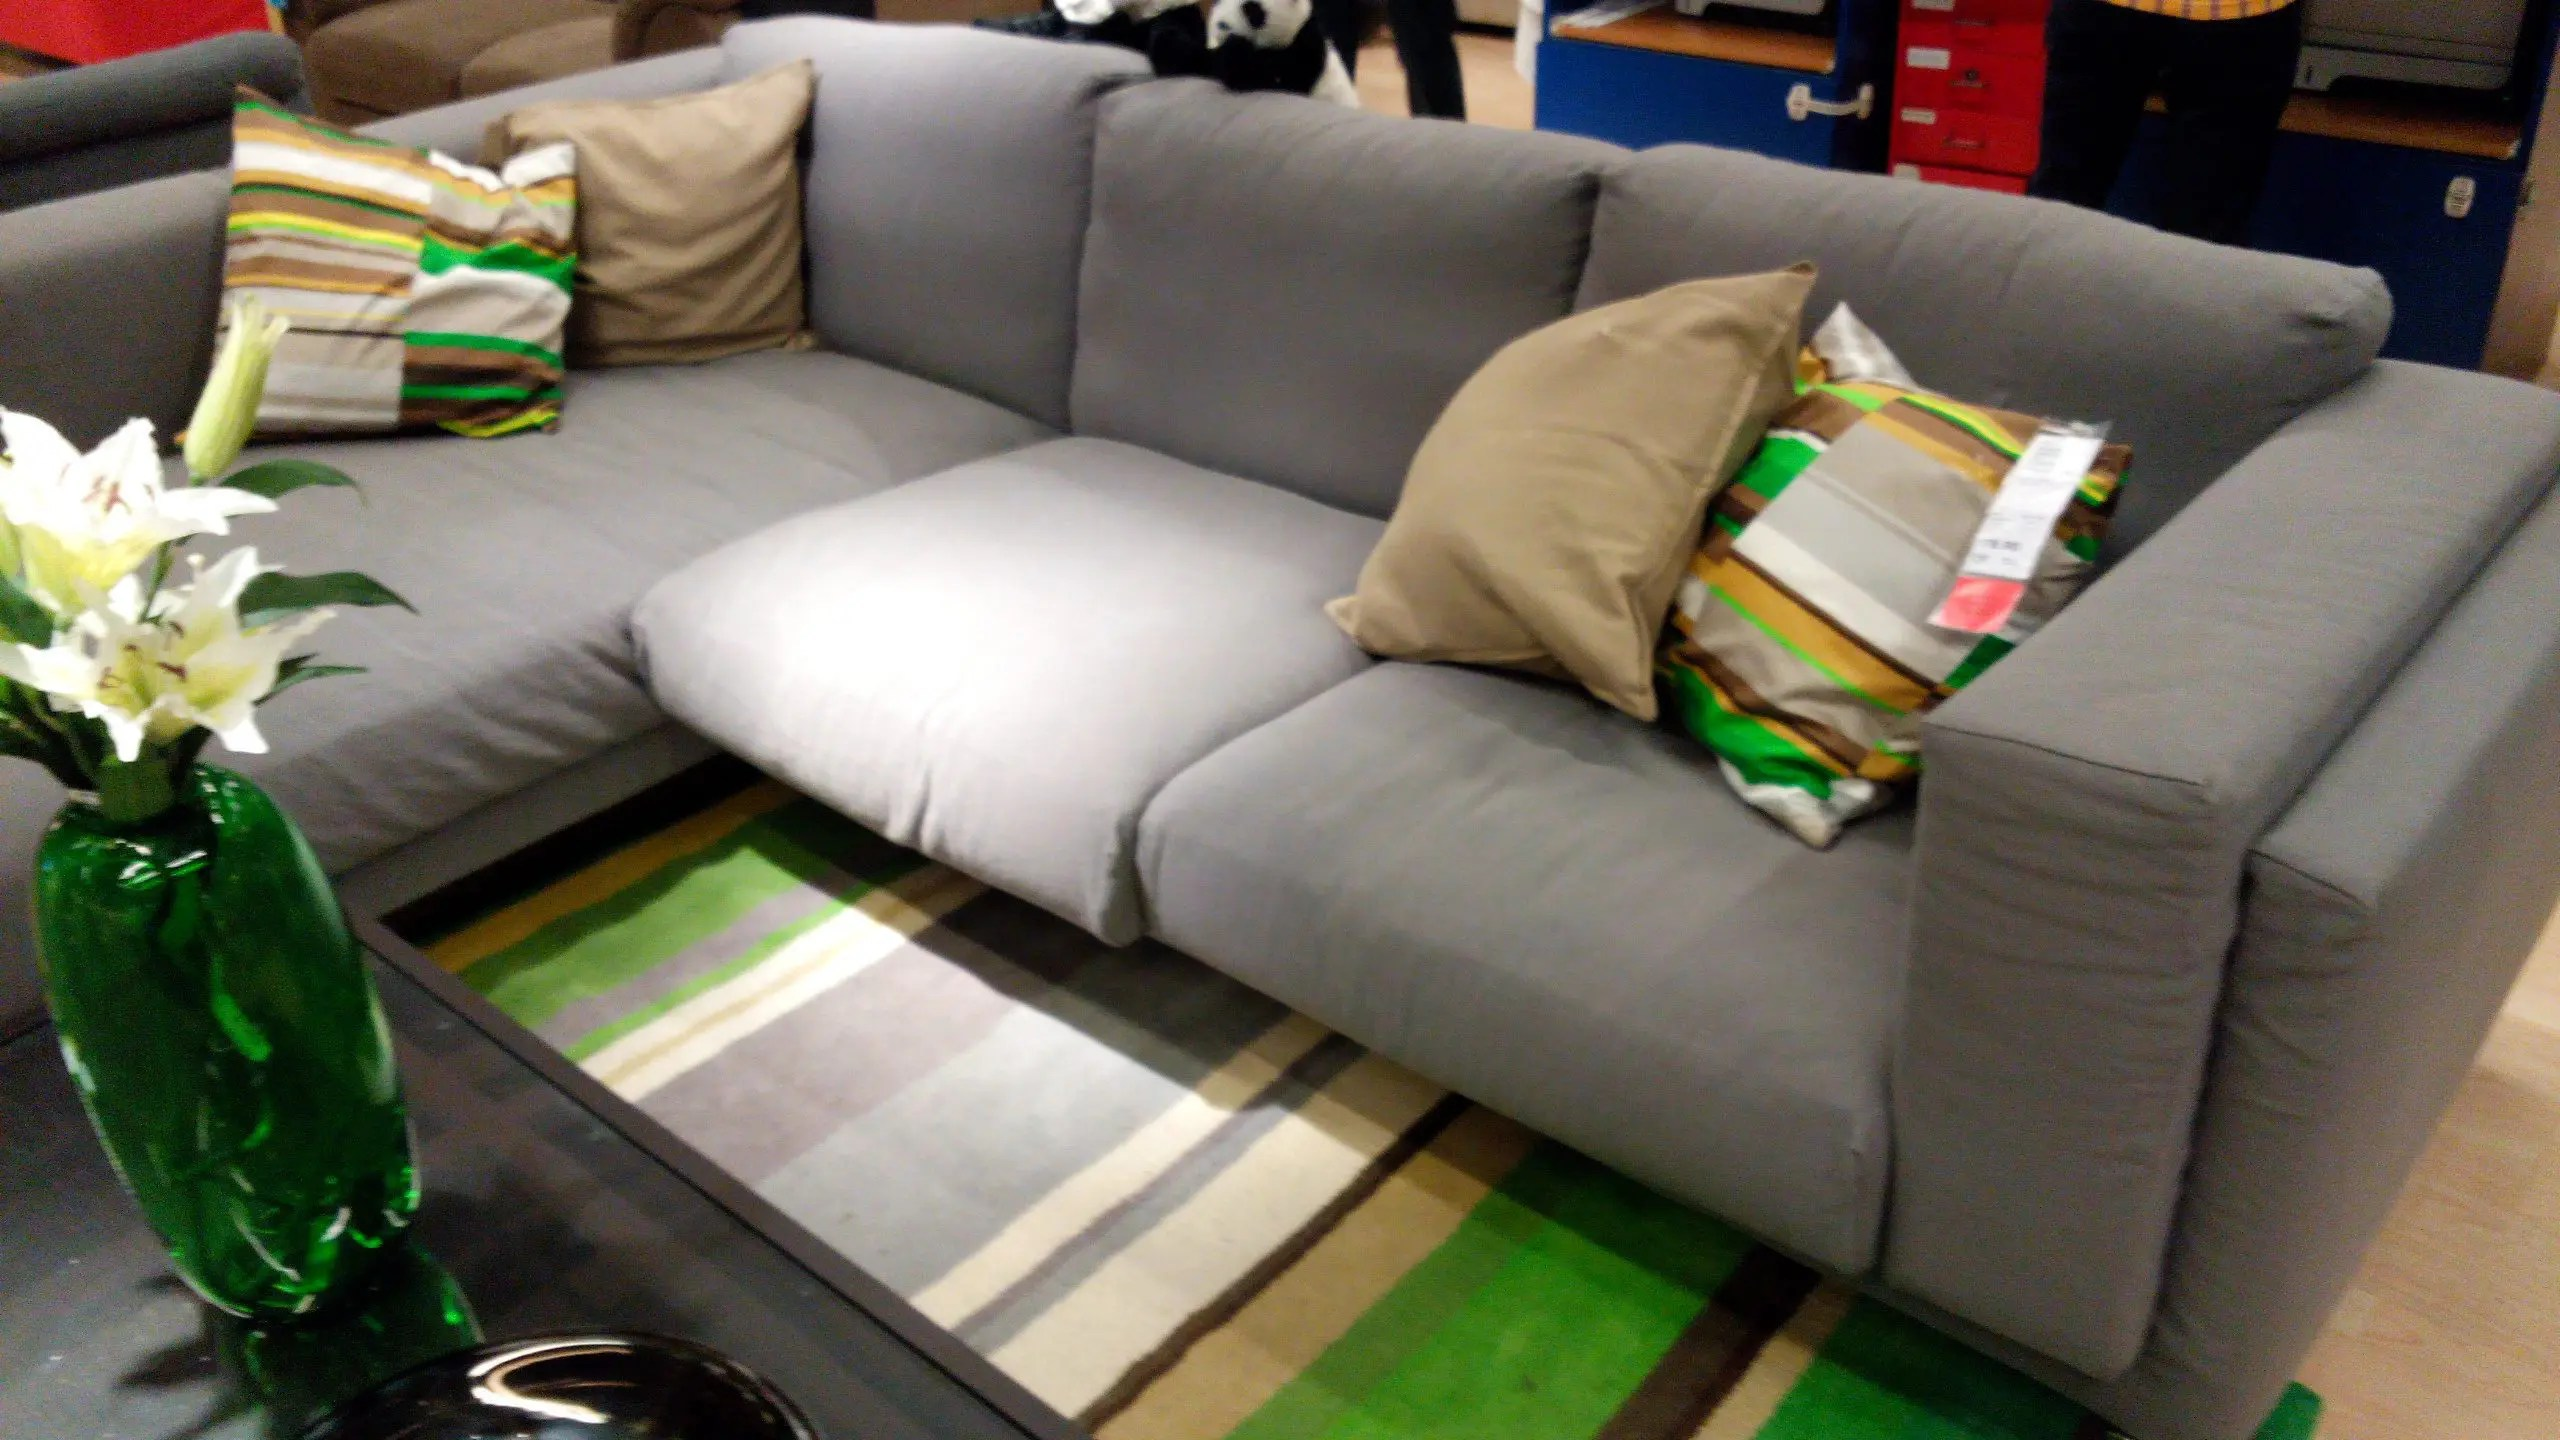 Ikea Nockeby Sofa Review New Ikea Couch Series Mid 2014